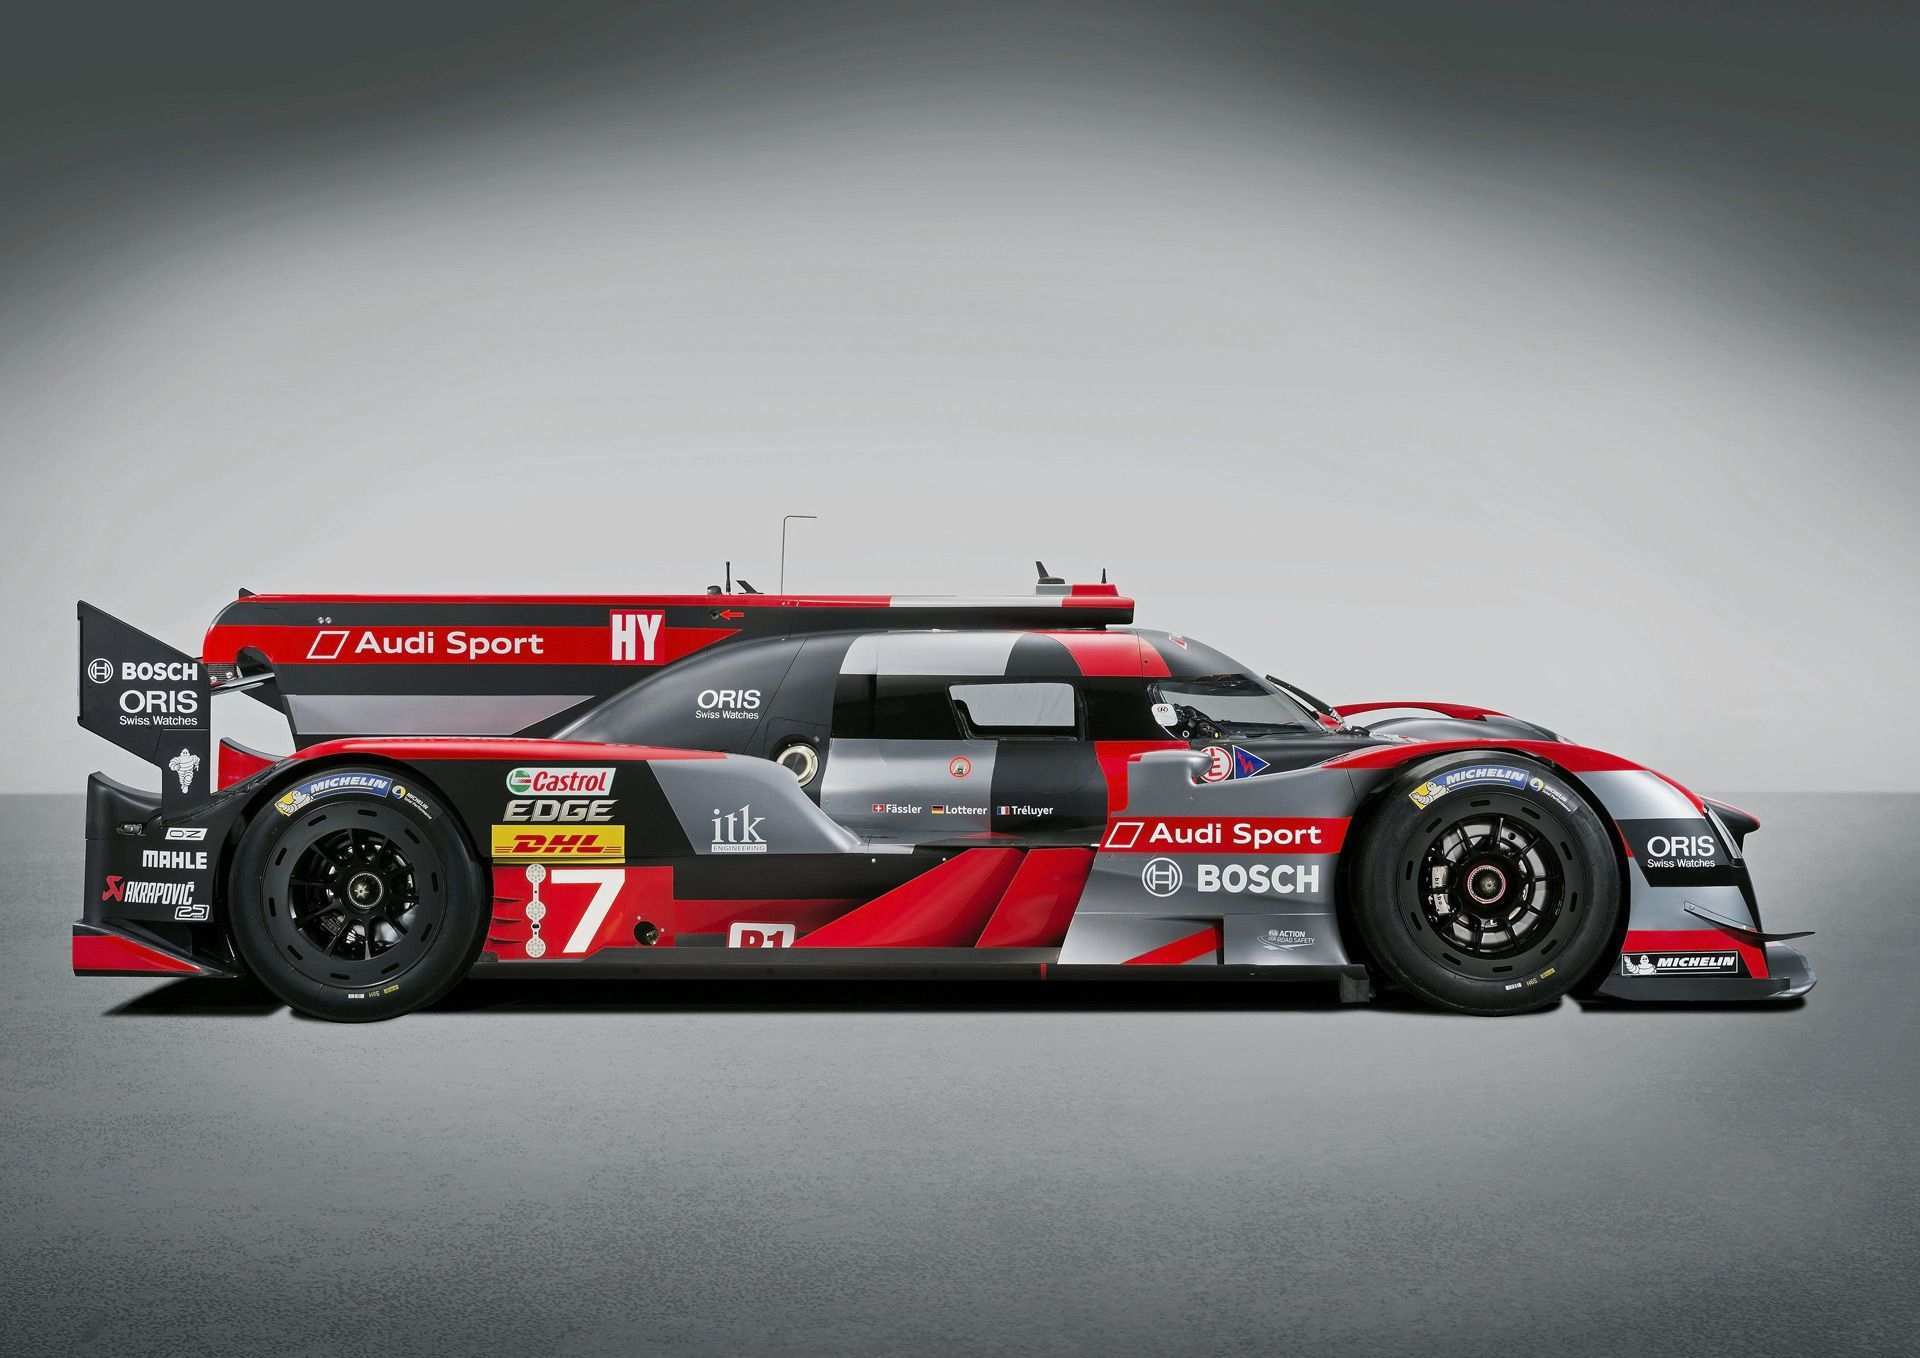 83 Concept of The Audi Le Mans 2019 Release Specs And Review Speed Test with The Audi Le Mans 2019 Release Specs And Review